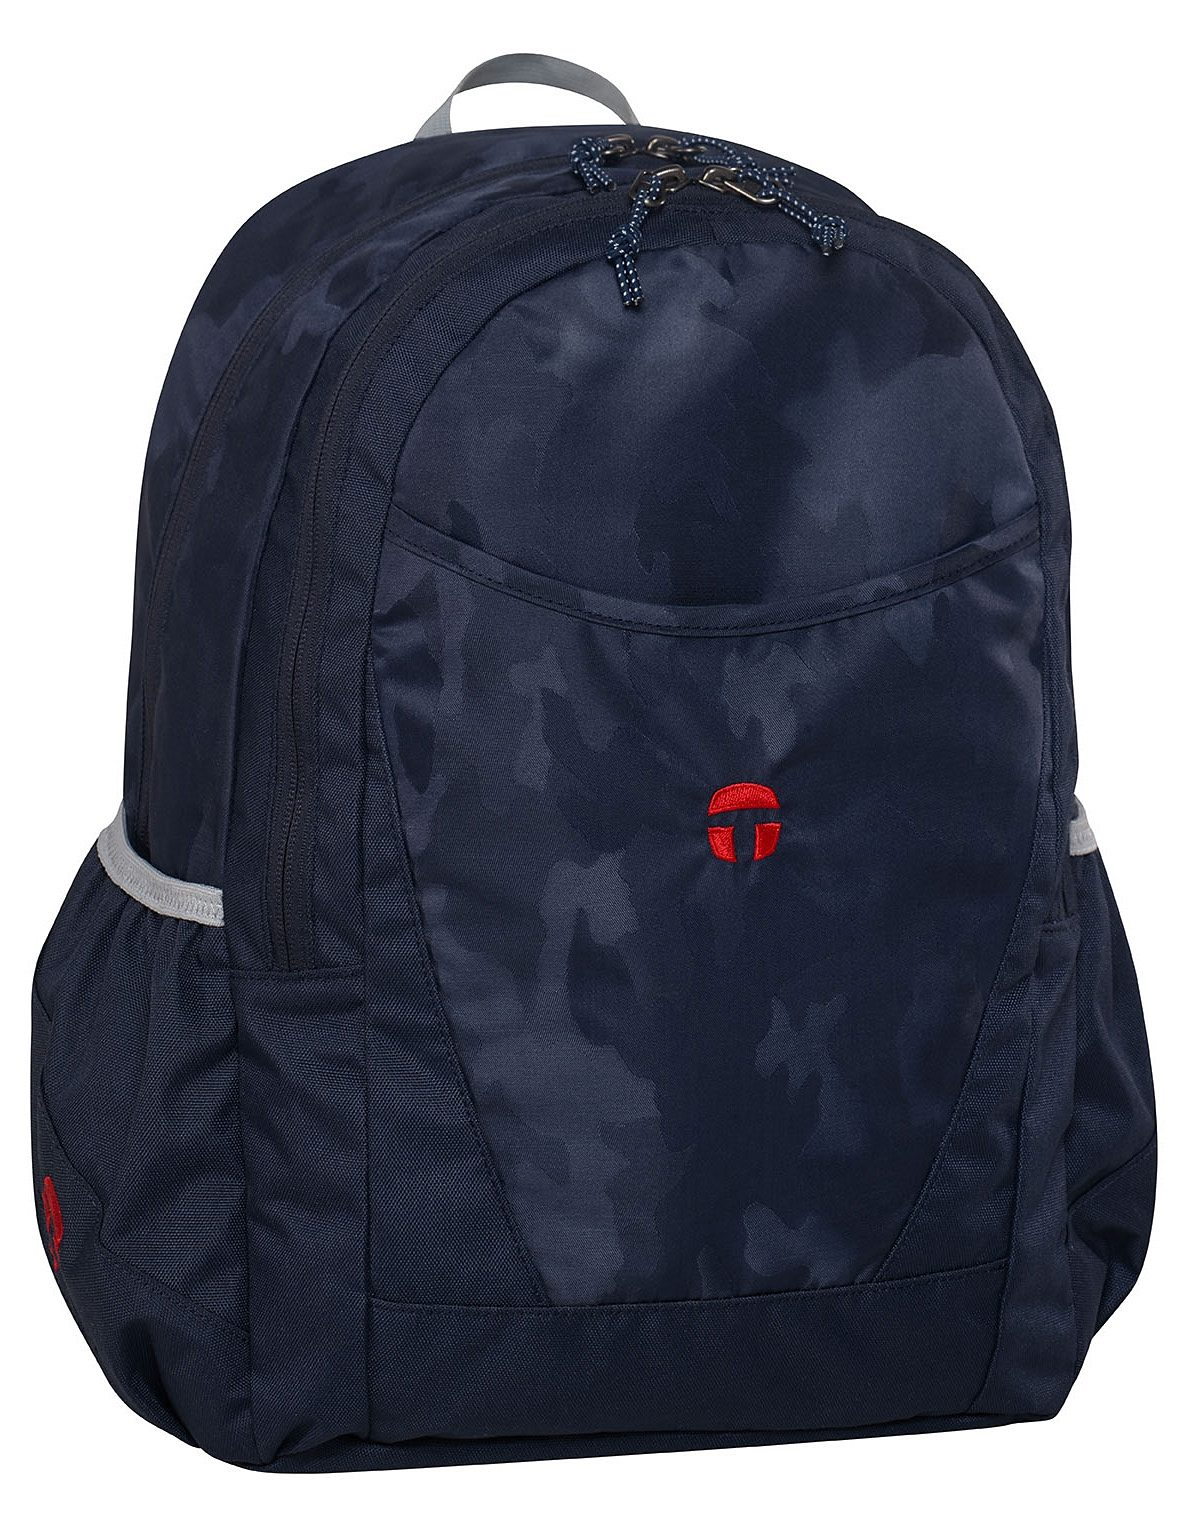 TAKE IT EASY® Schulrucksack, »Paris camouflage navy«